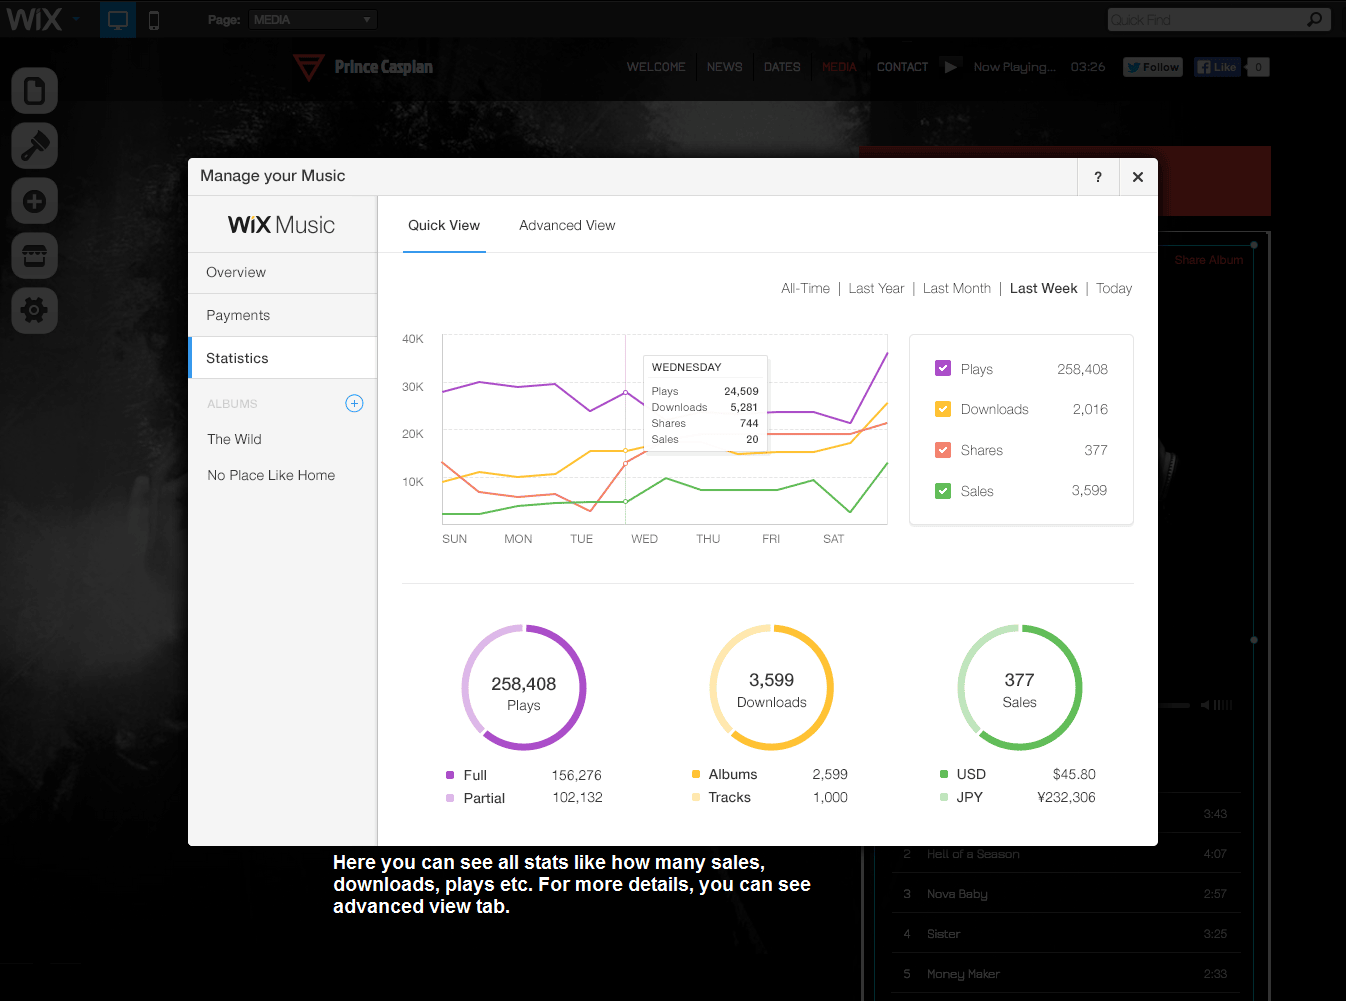 wix music stats like number of music sales, downloads, plays & advanced statistics.